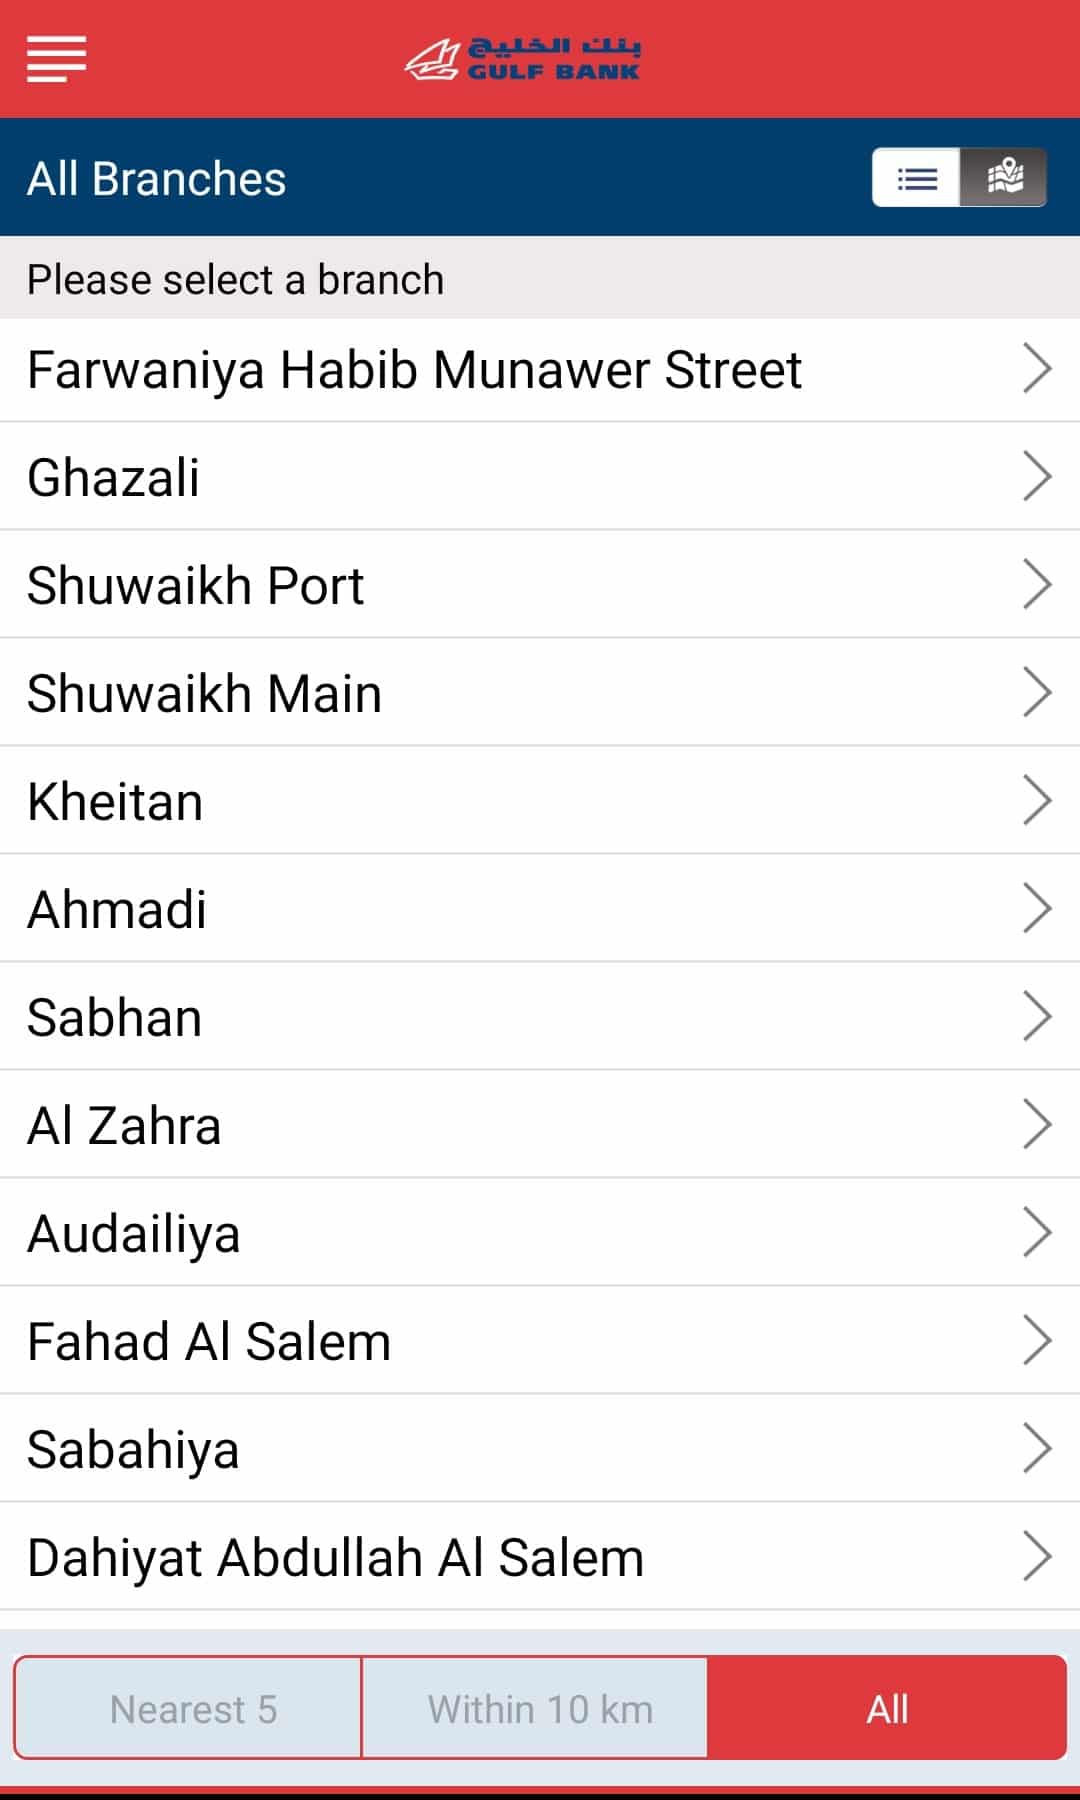 Gulf Bank App For Booking Branch Appointments, iiQ8 4